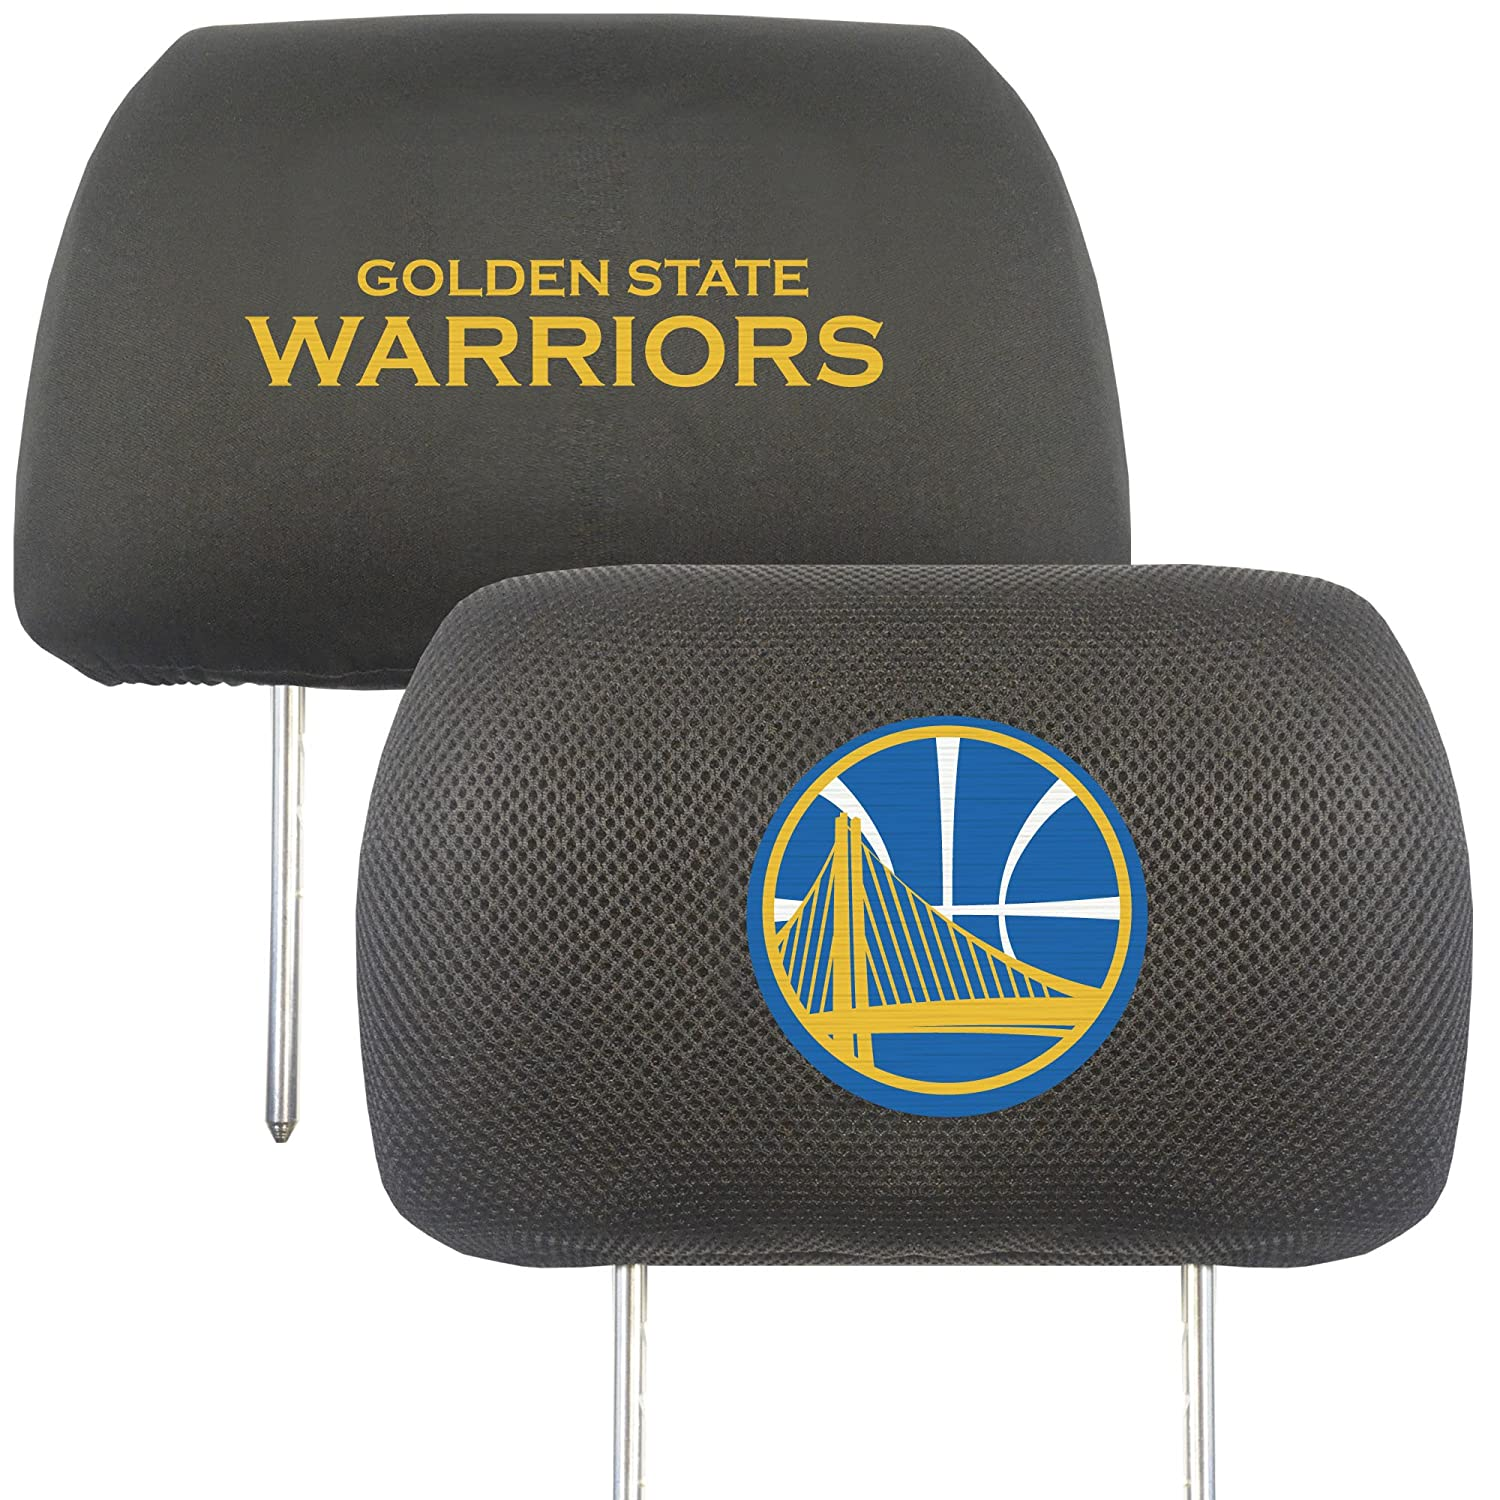 FANMATS 20323 NBA - Golden State Warriors Head Rest Cover, Team Color, 10'x13' 10x13